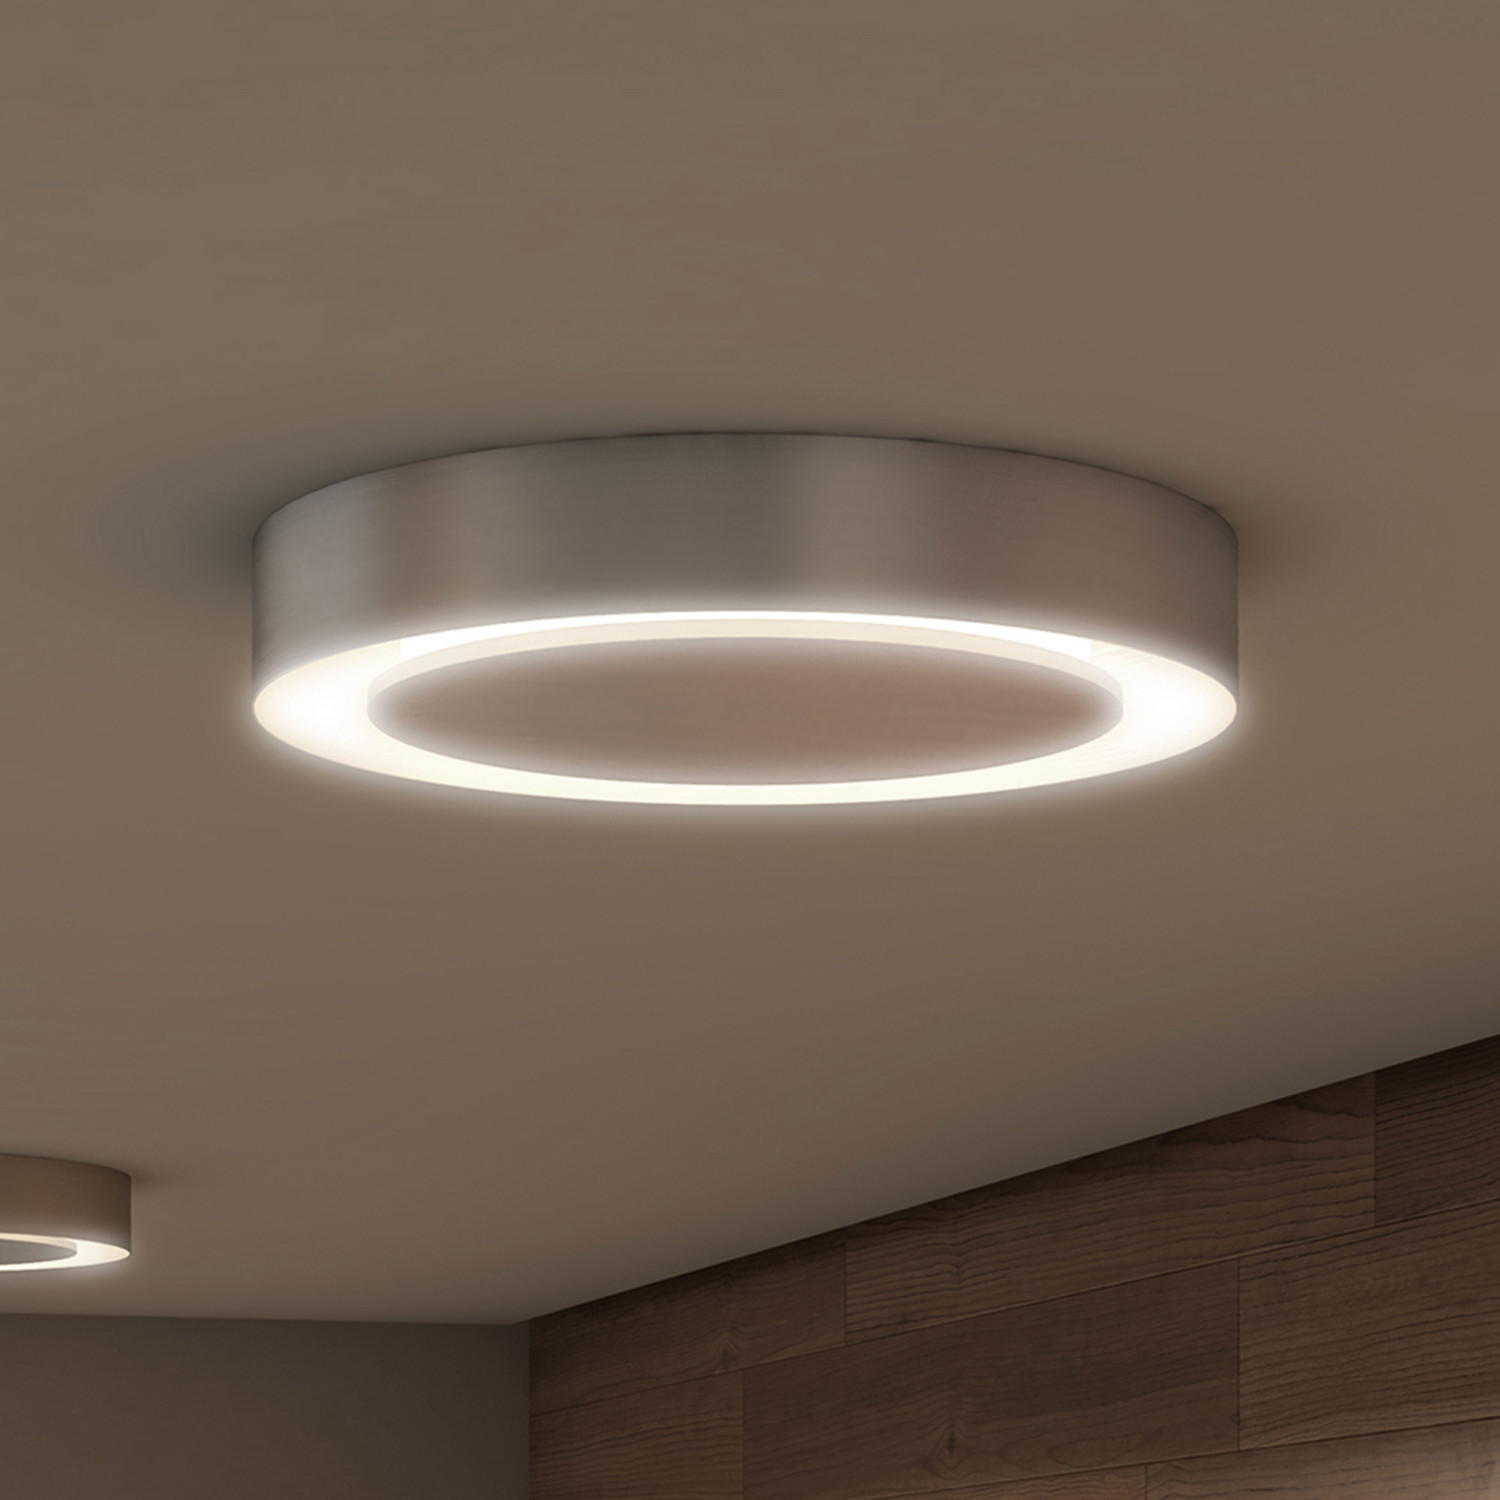 Lutron Lighting Tech Support Talitha // Circular Ceiling Fixture - Vonn - Touch Of Modern